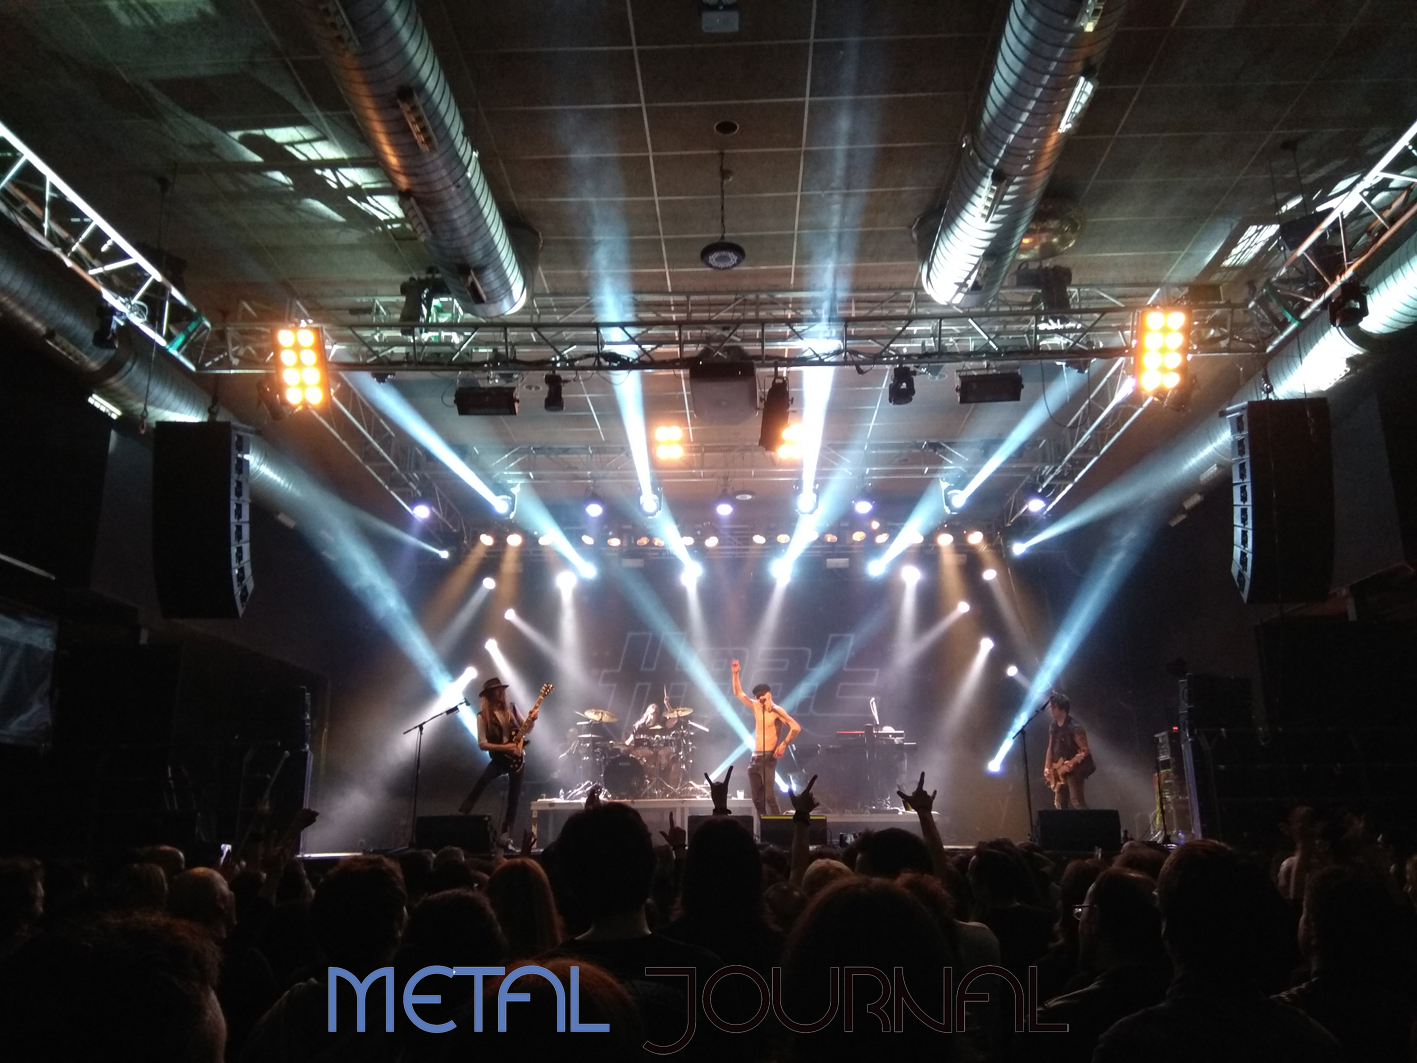 heat bilbao metal journal 2018 pic 12